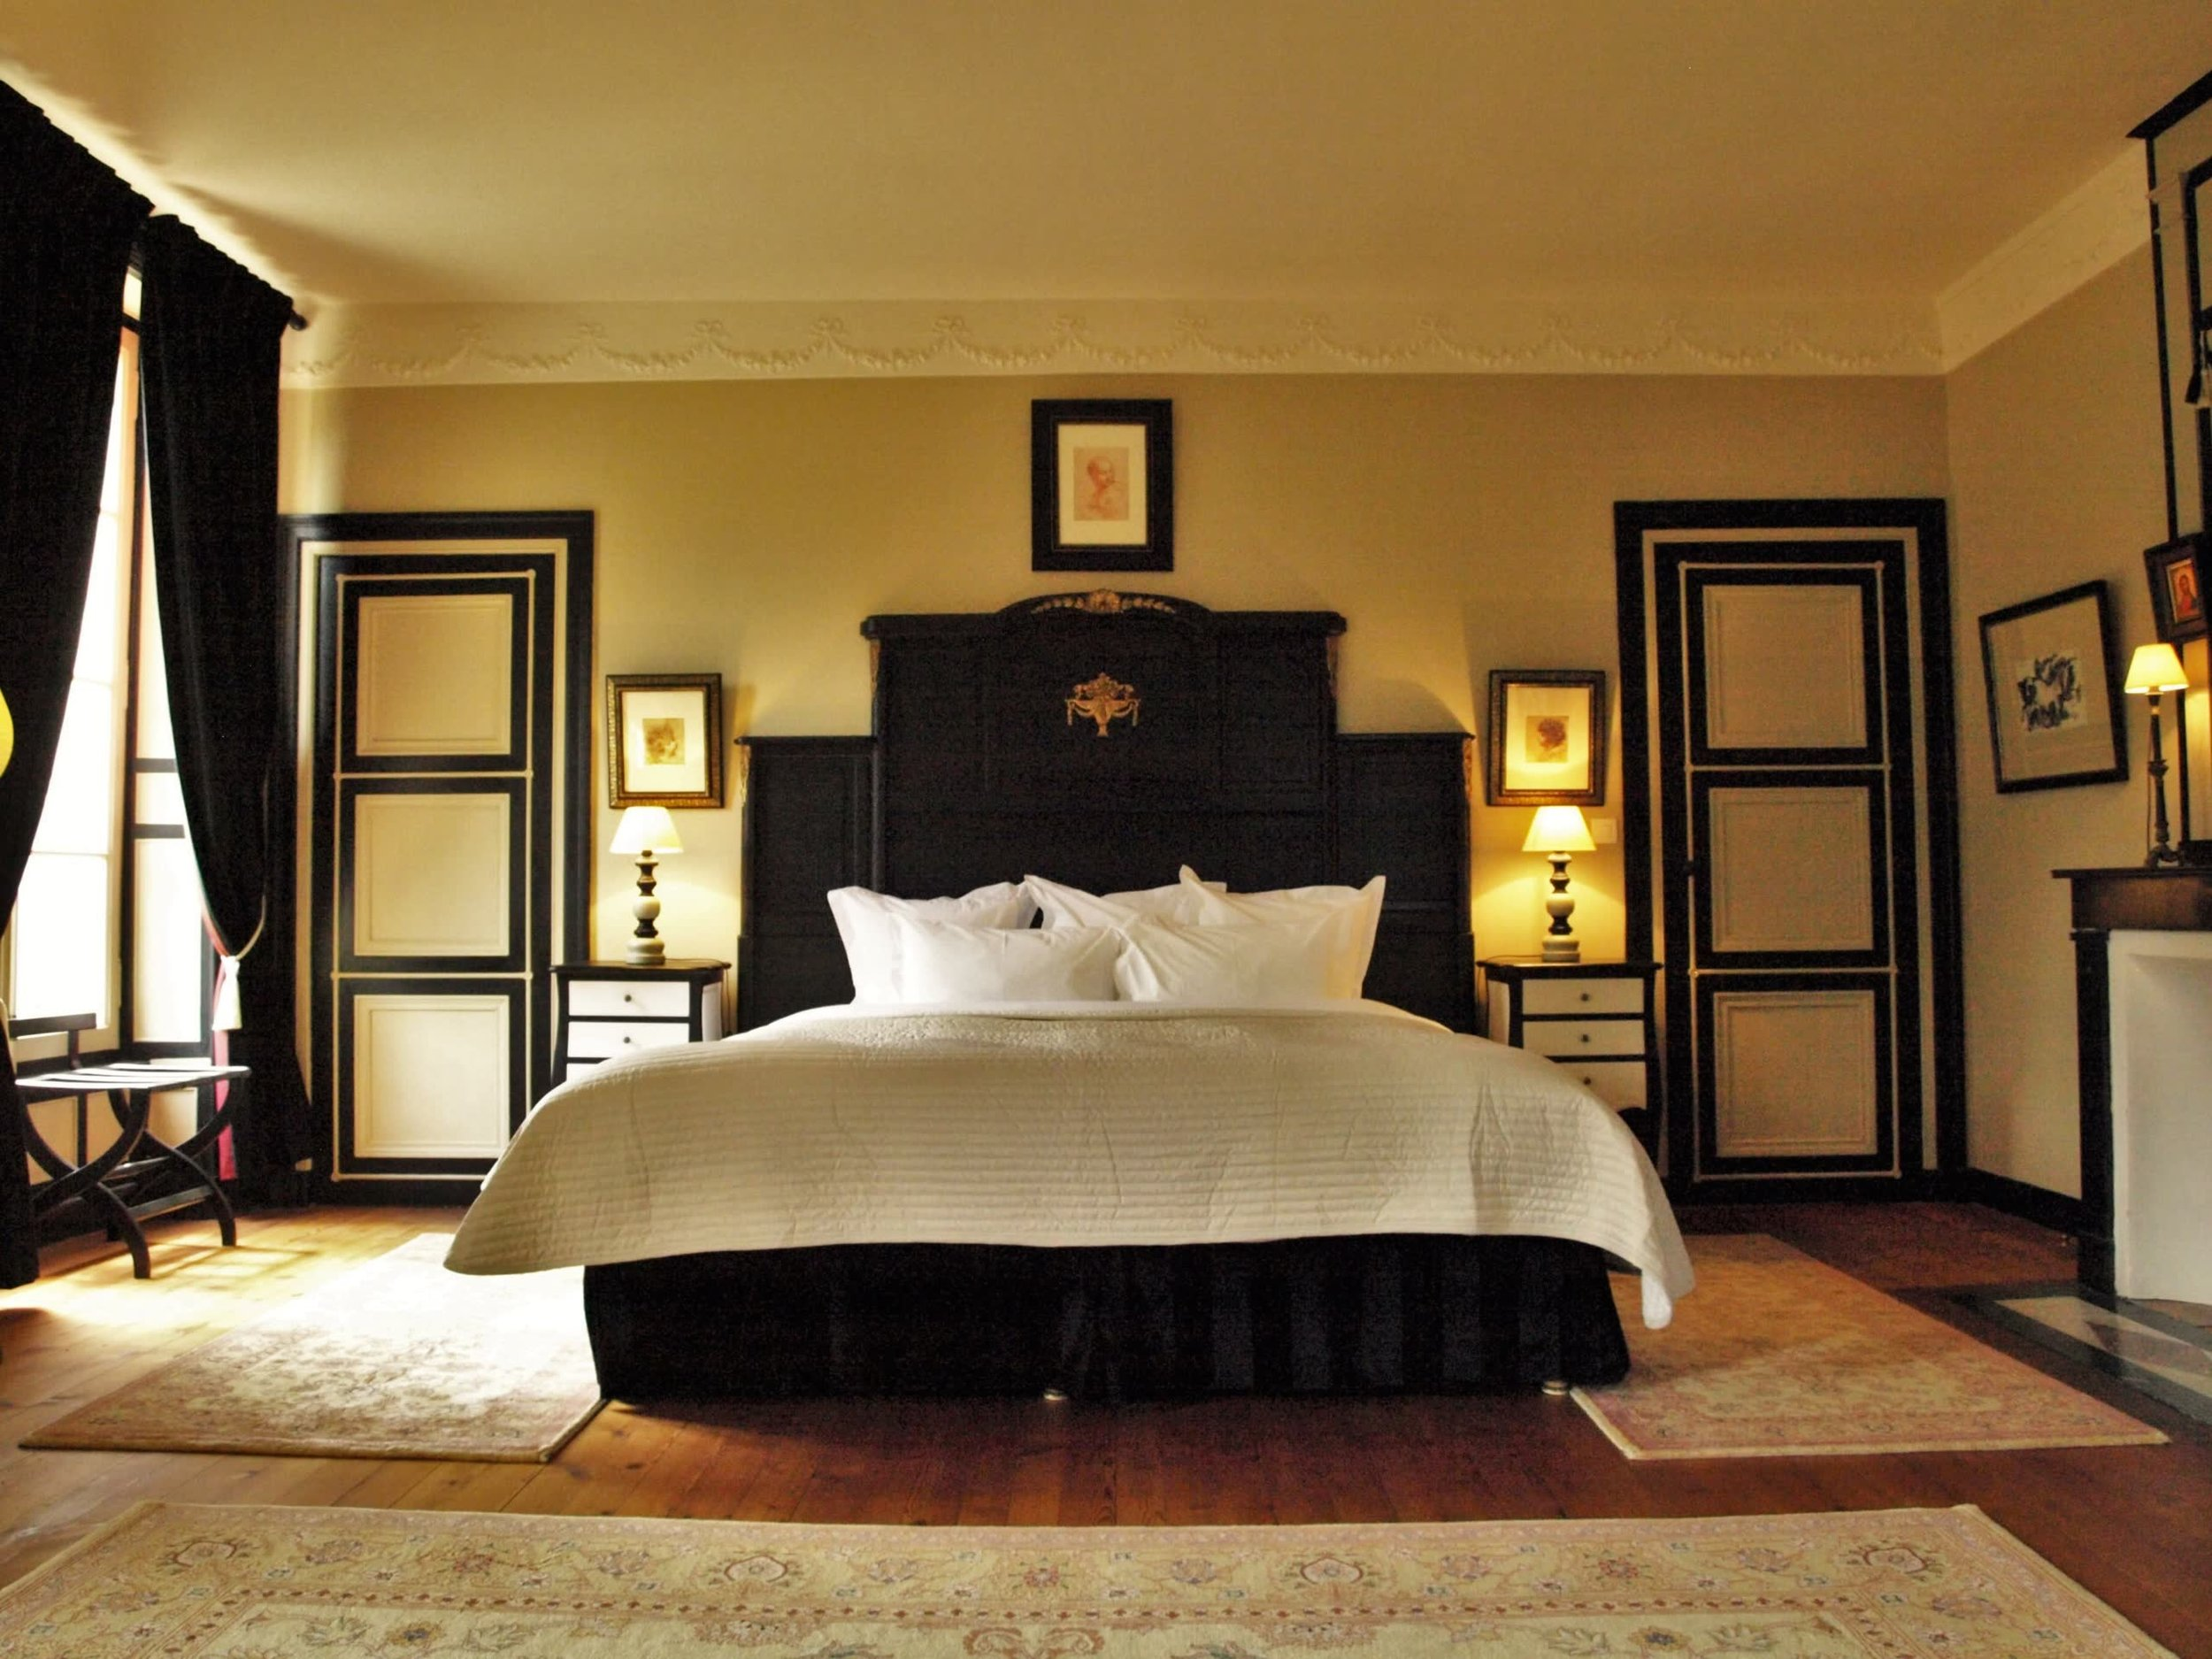 Chateau de la Pommeraye - charming boutique hotel chateau b&b spa normandy calvados bedroom Fragrances 3(2).jpg